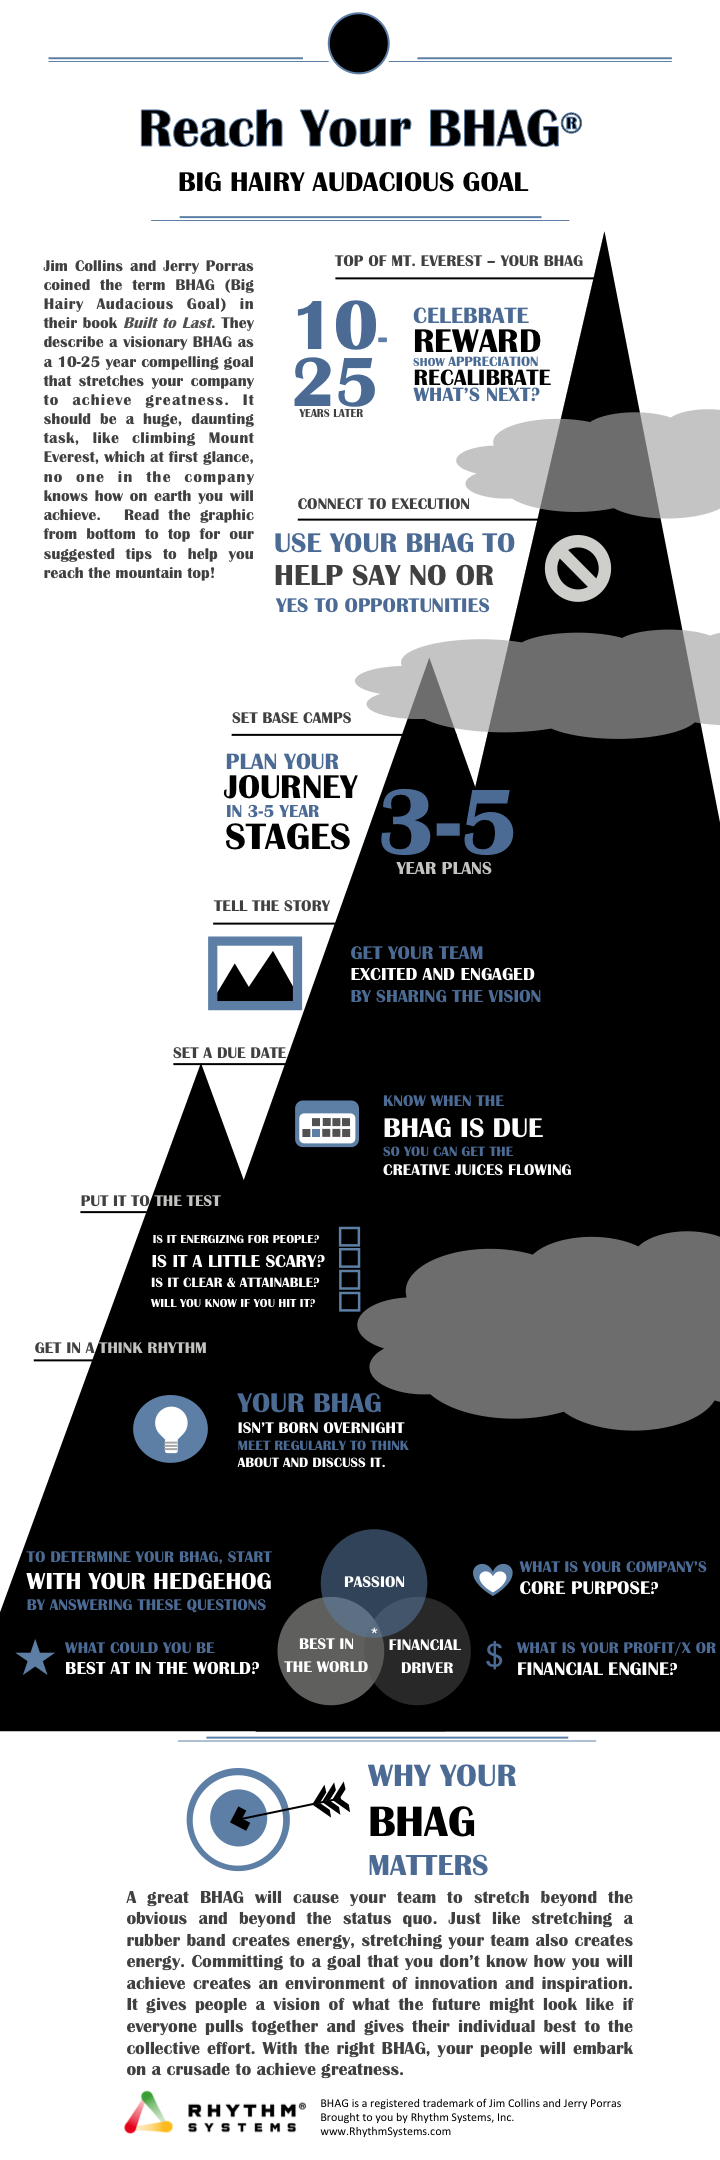 Reach-Your-BHAG-infographic